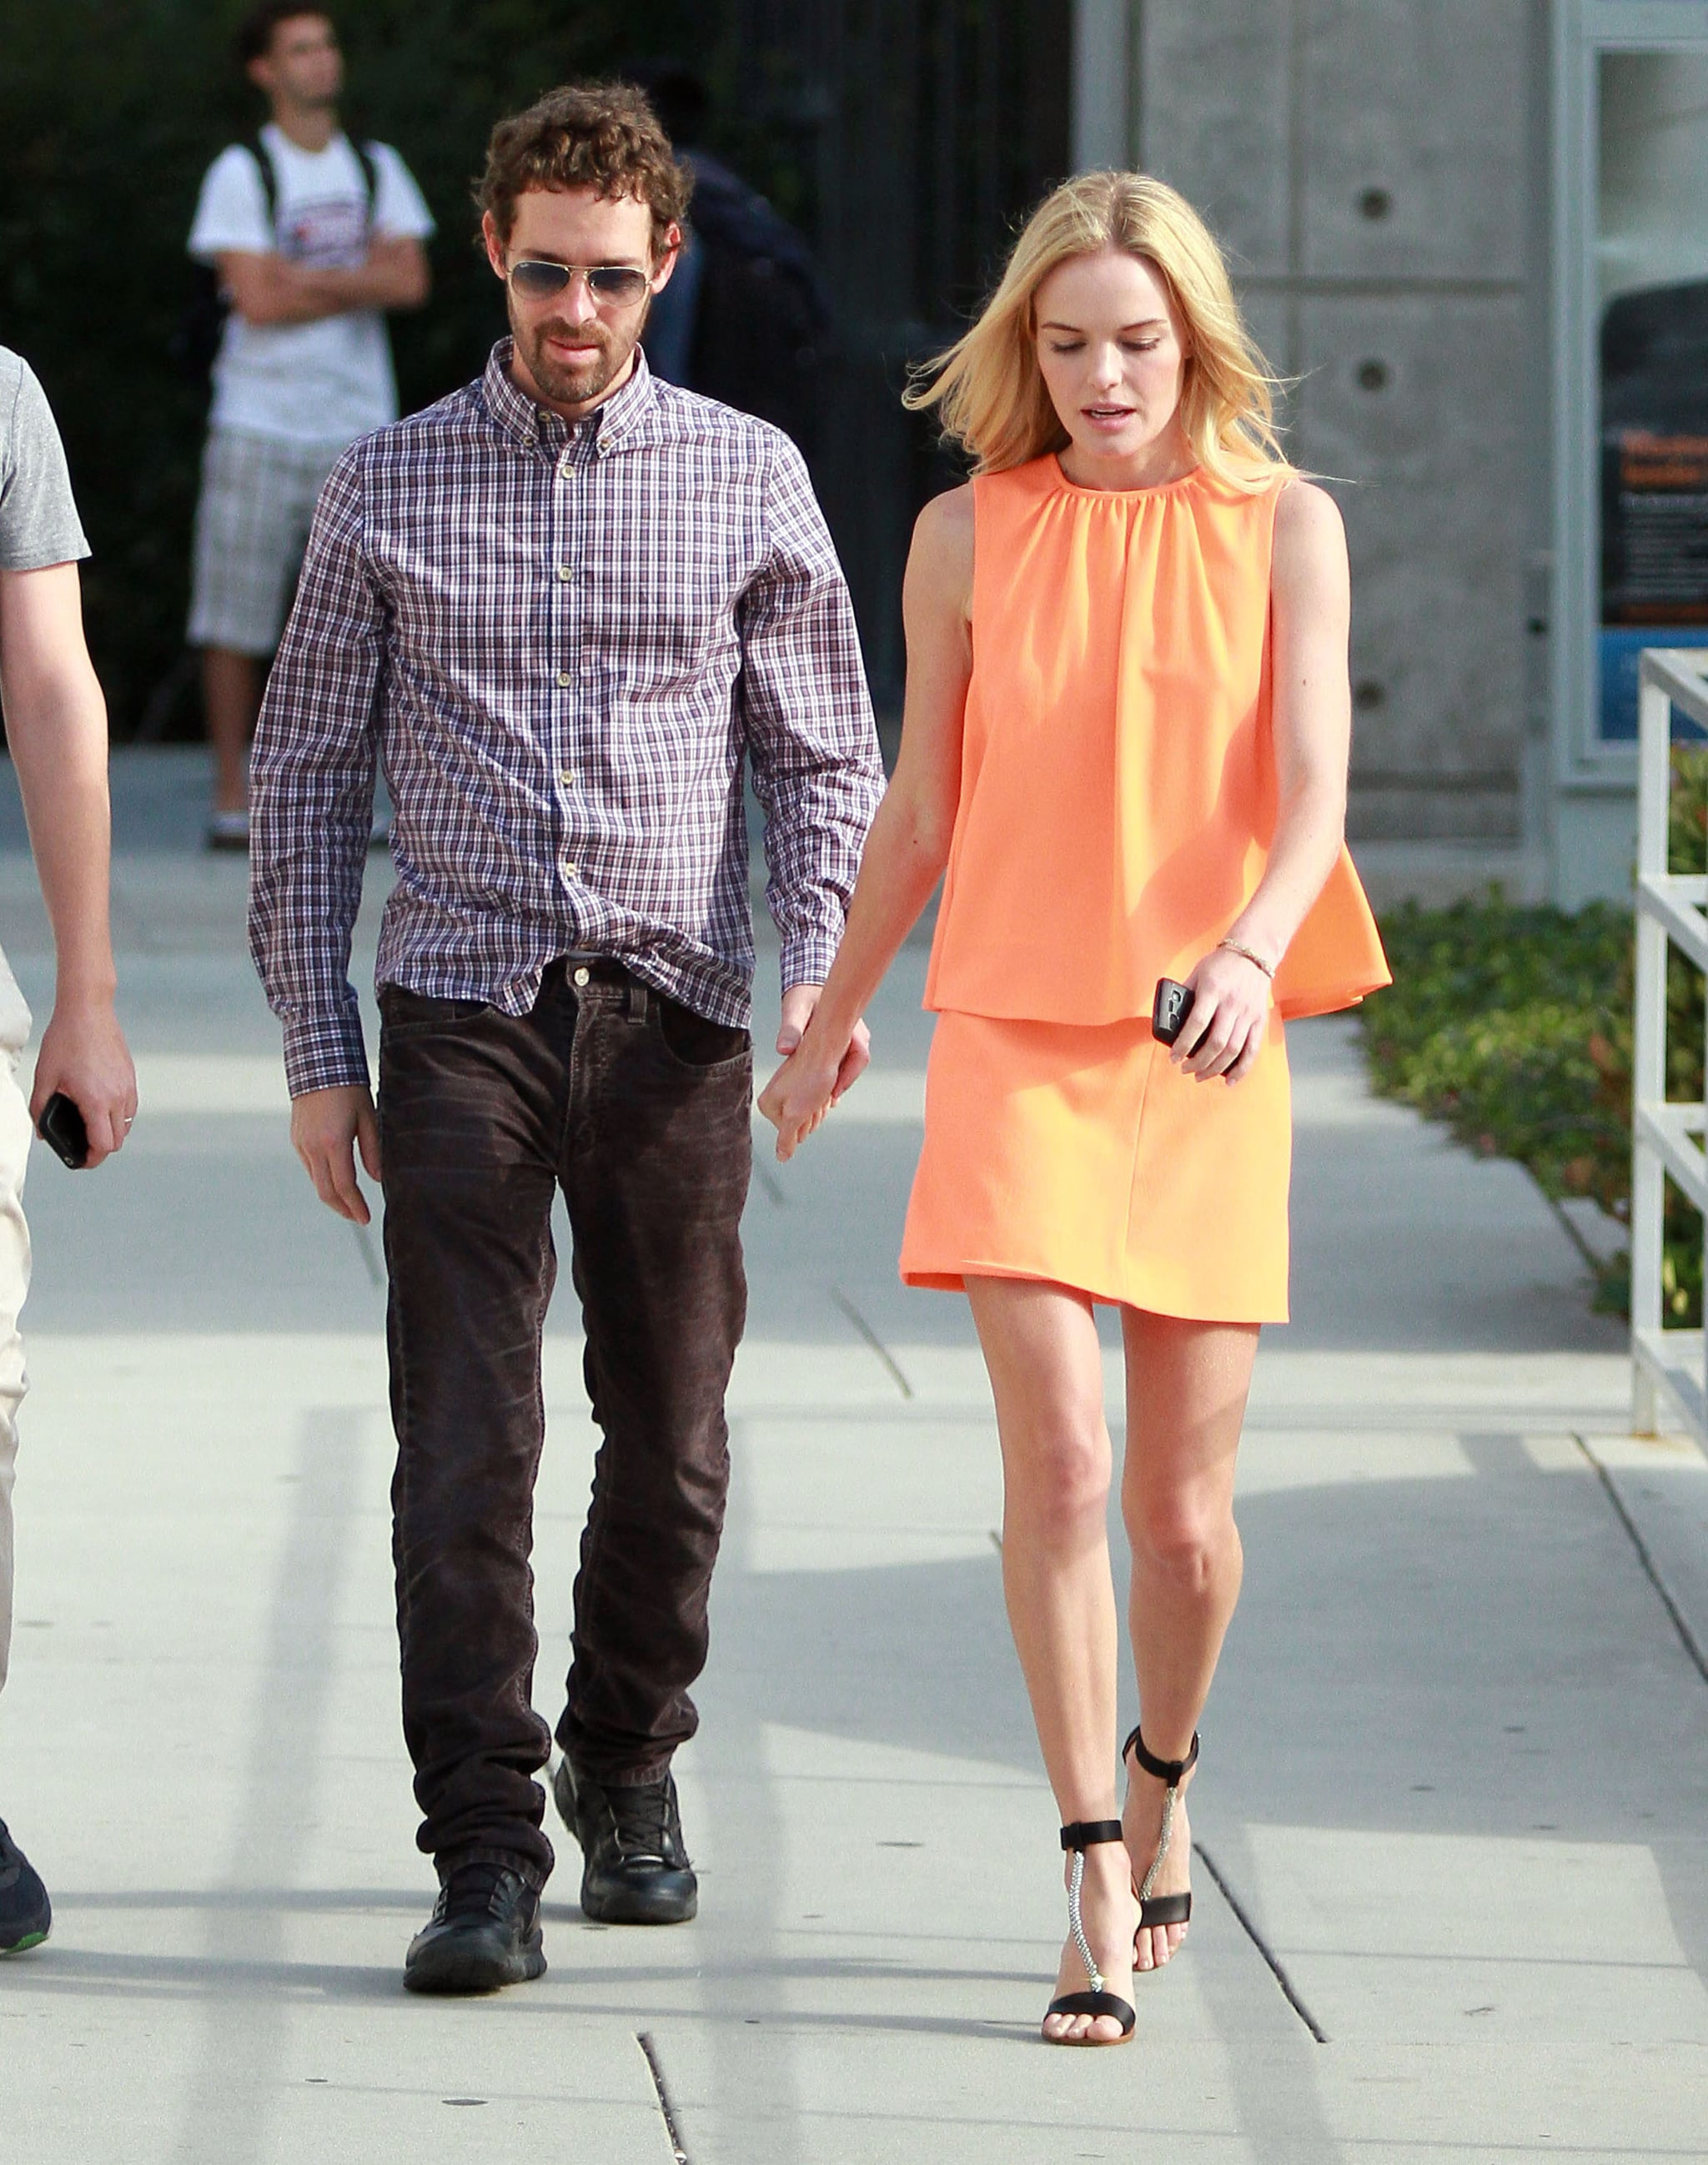 Kate Bosworth in a chic bright dress.